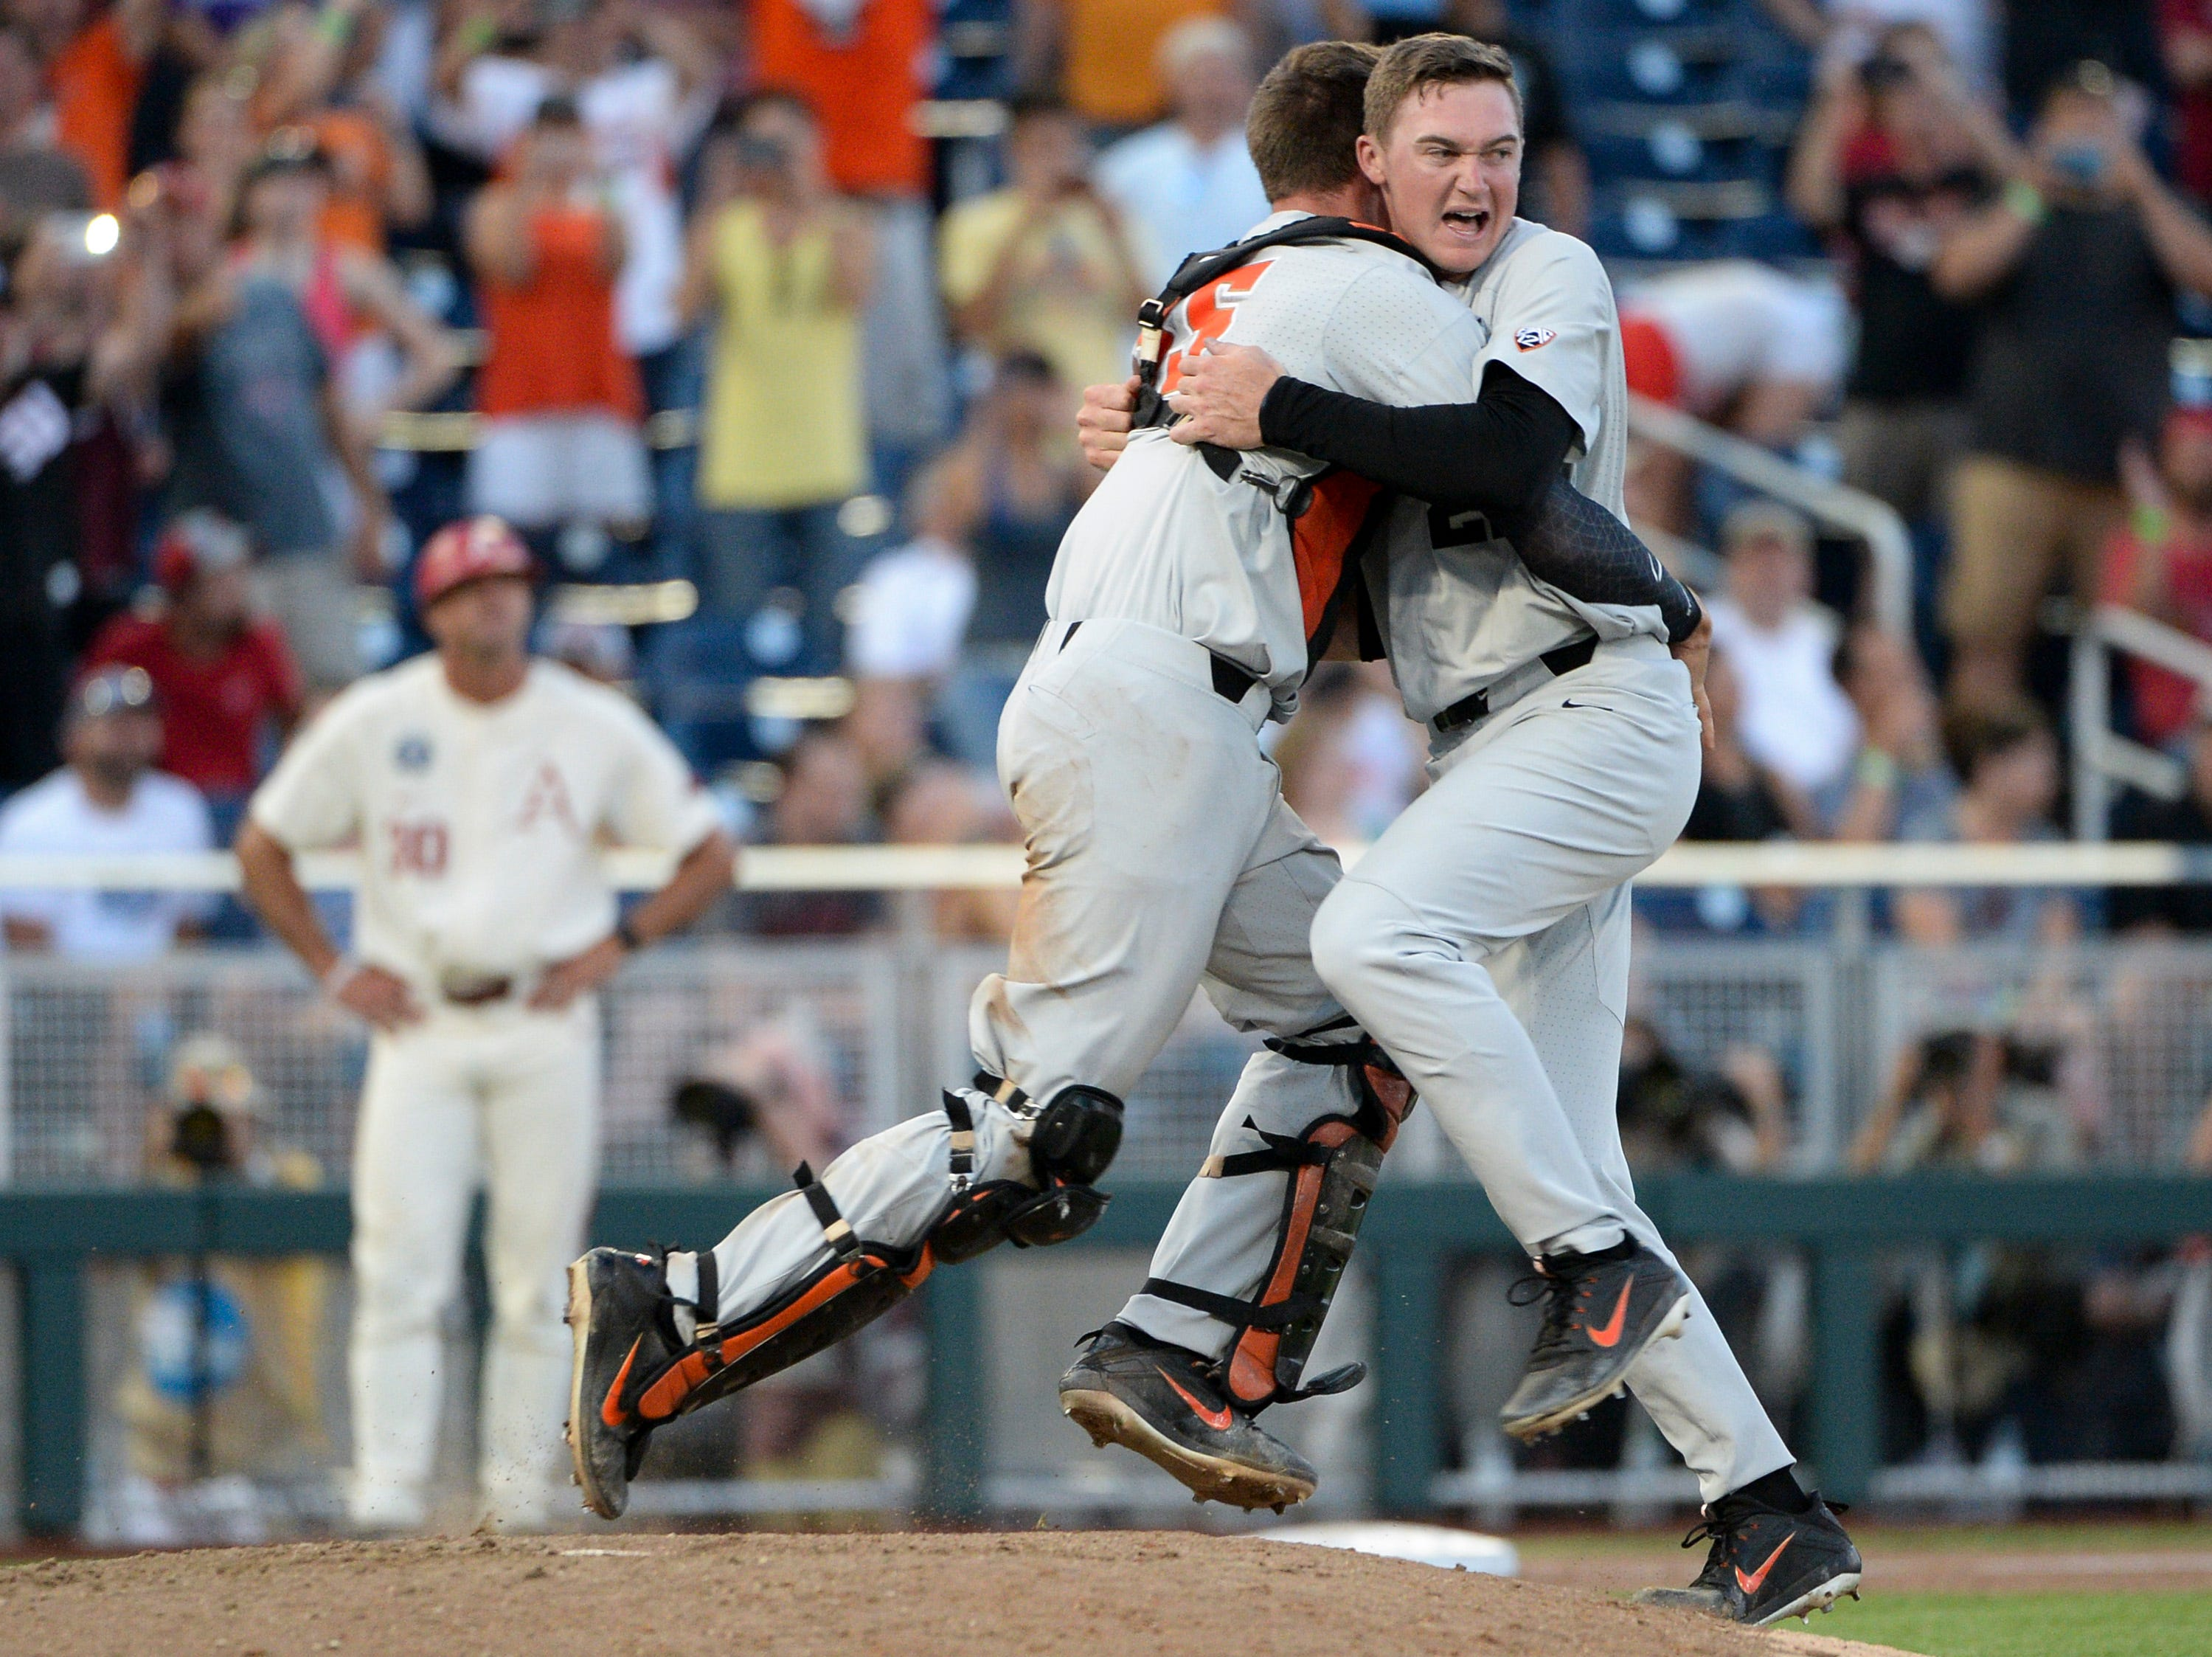 June 28: Oregon State Beavers pitcher Kevin Abel (right) celebrates with catcher Adley Rutschman after beating the Arkansas Razorbacks in Game 3 of the College World Series to win the national championship.